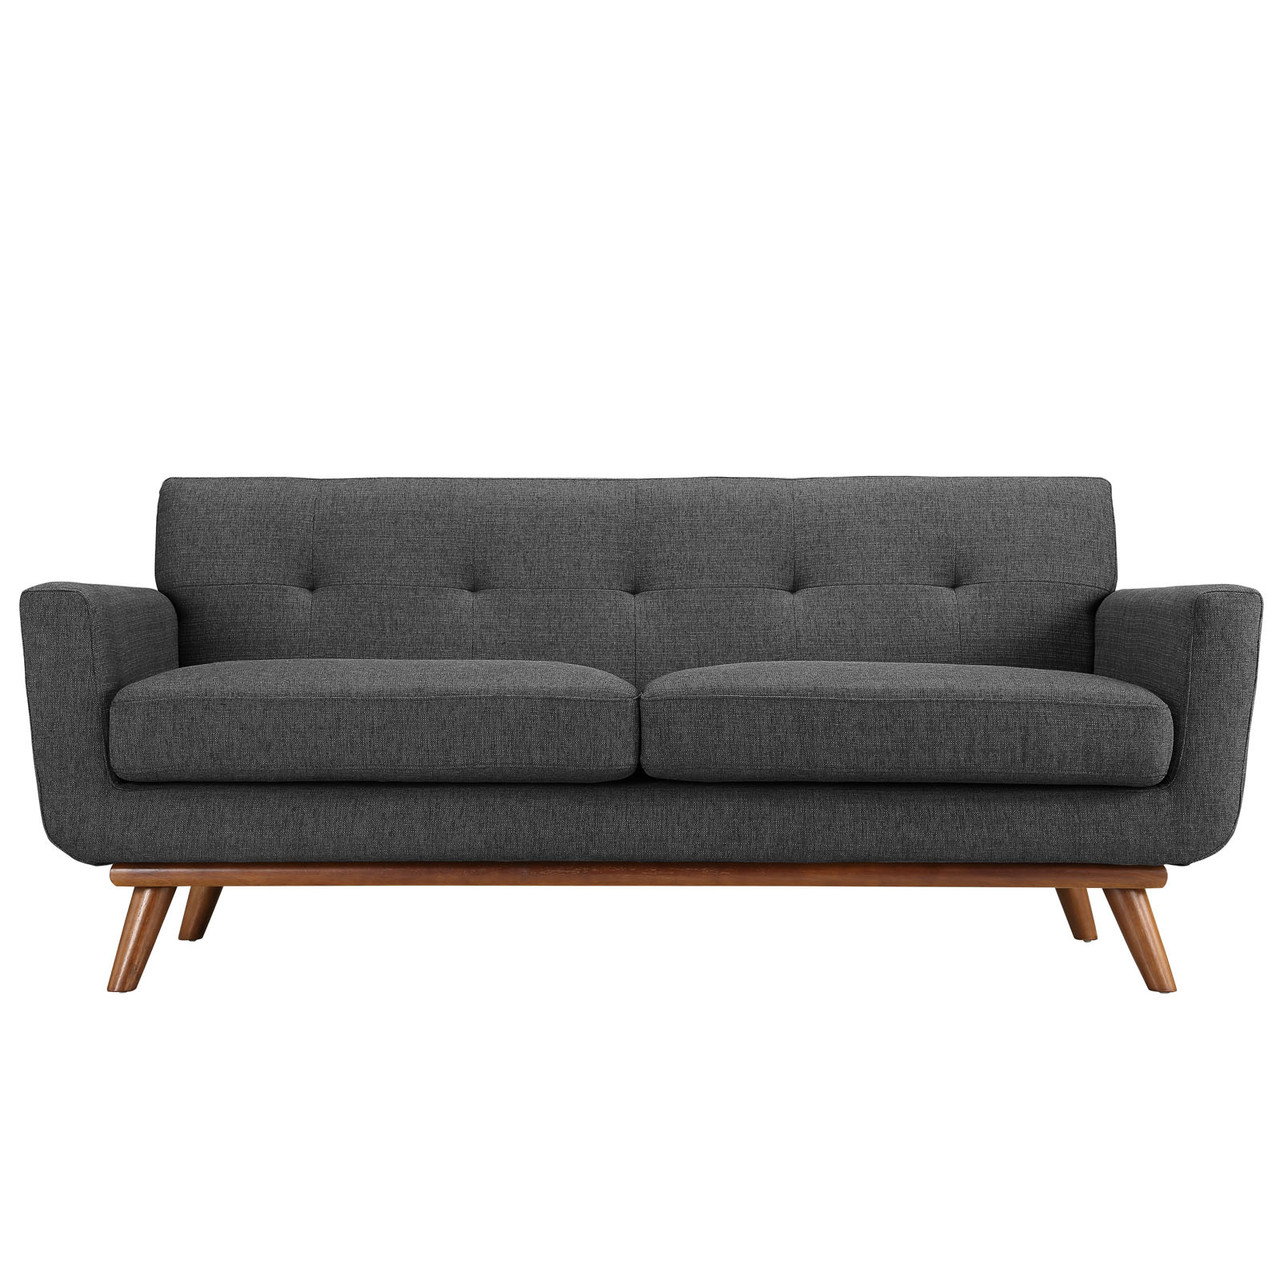 spiers sofa review leather bed recliner 3 seater engage upholstered loveseat